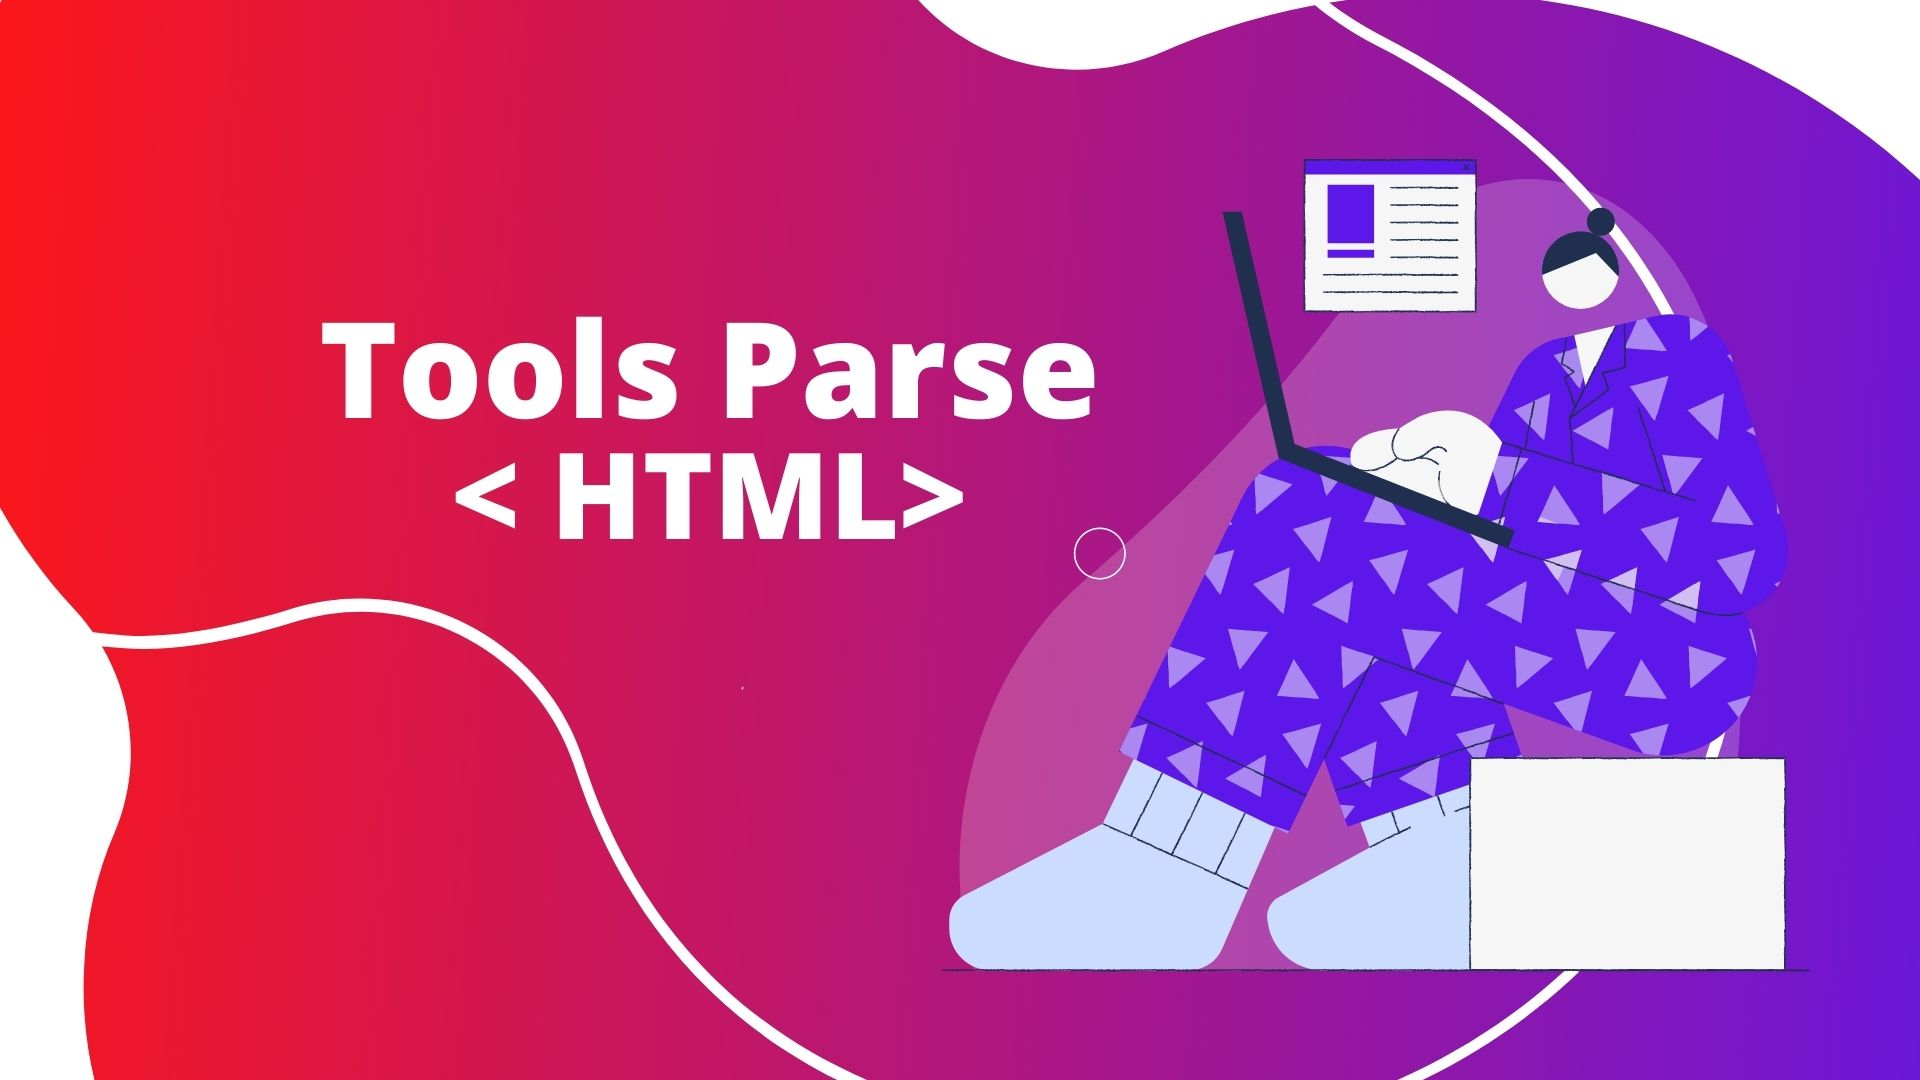 Best Parse HTML tool for pasting code on a blog